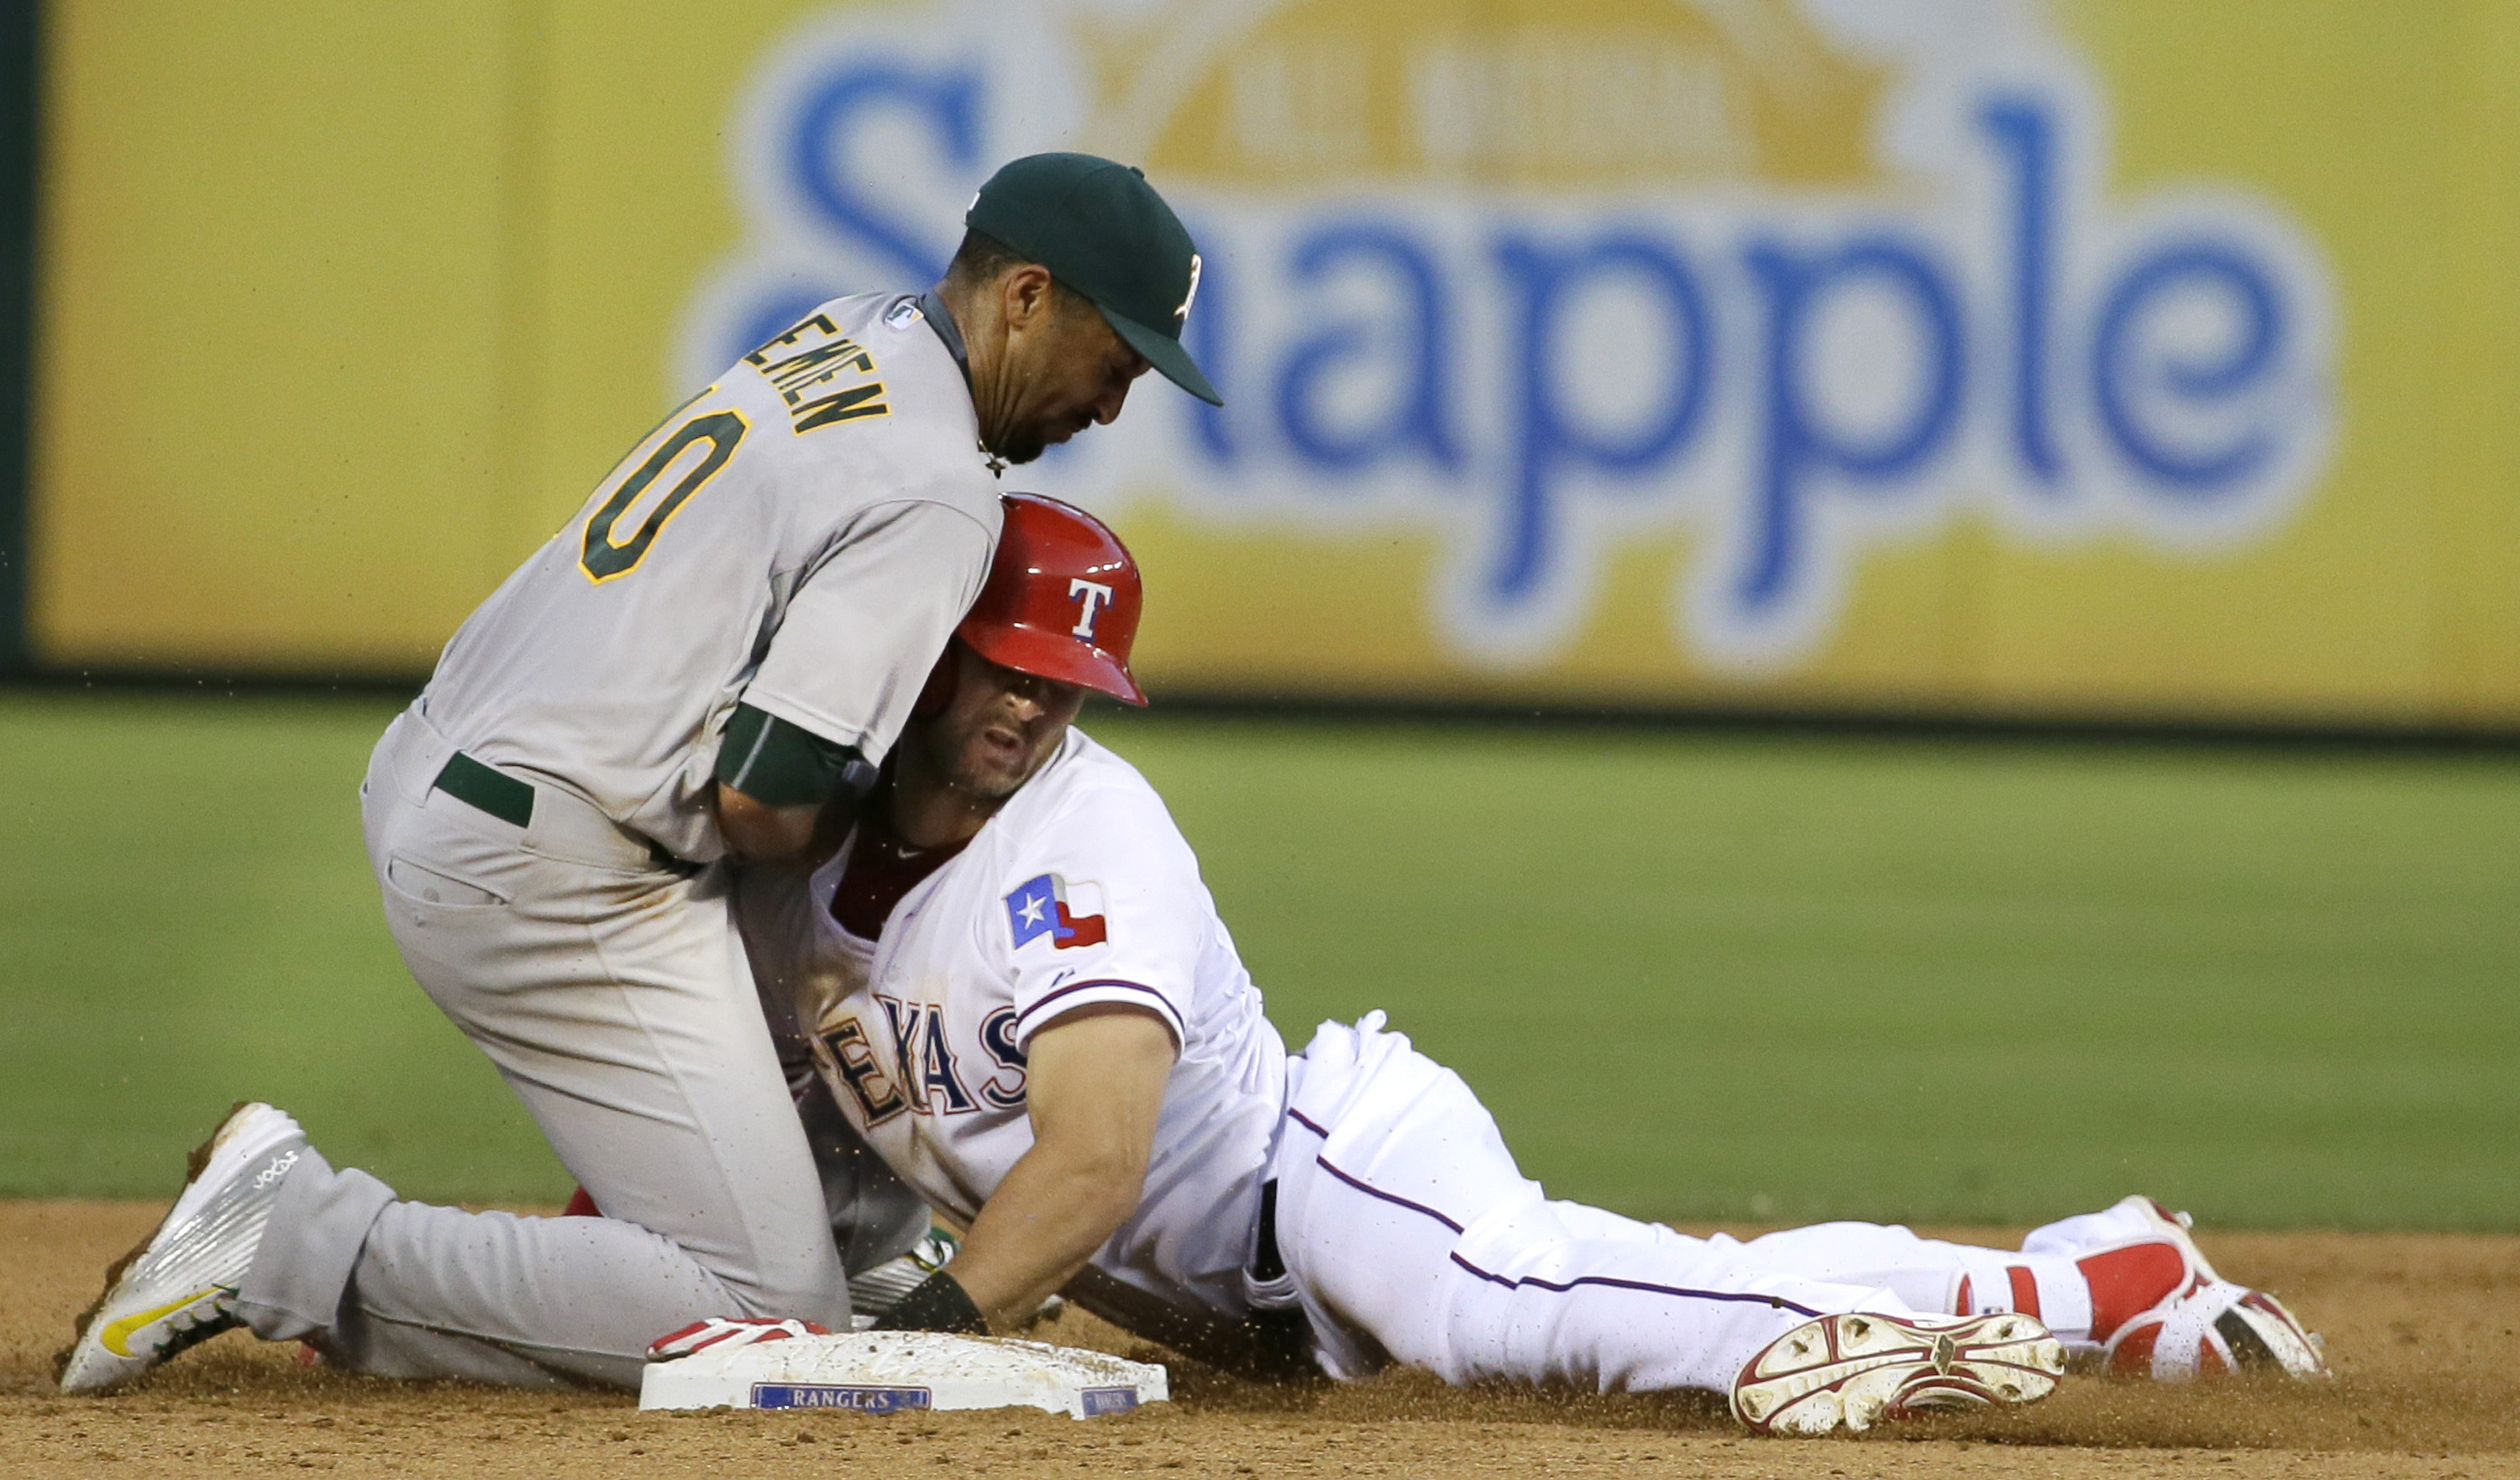 Texas Rangers Joey Gallo, right, slides safely into  Oakland Athletics shortstop Marcus Semien (10) for a double during the fifth inning of a baseball game in Arlington, Texas, Tuesday, June 23, 2015. (AP Photo/LM Otero)